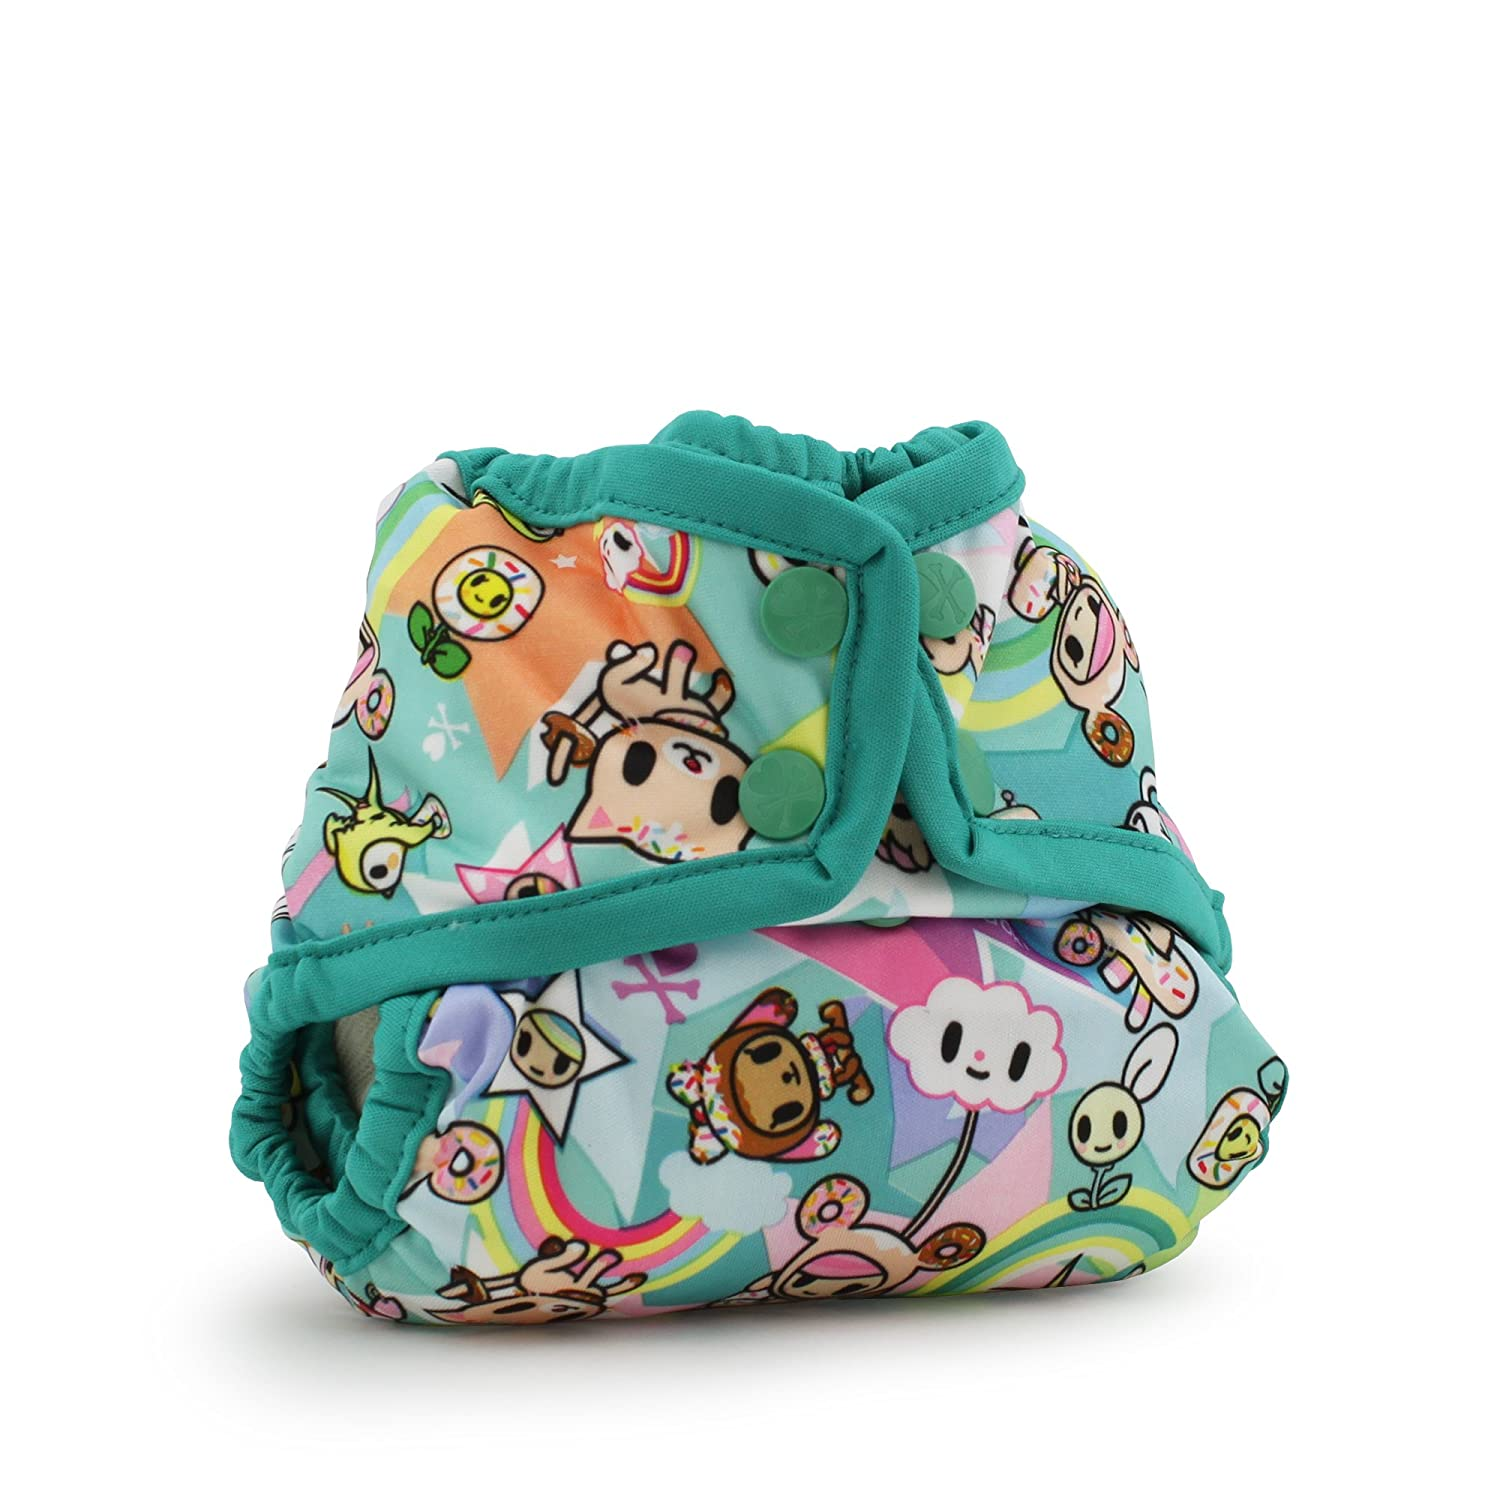 Kanga Care Rumparooz One-Size Cloth Diaper Cover, Snap, Dragons Fly, Castle KRCOVRSOS-P126b